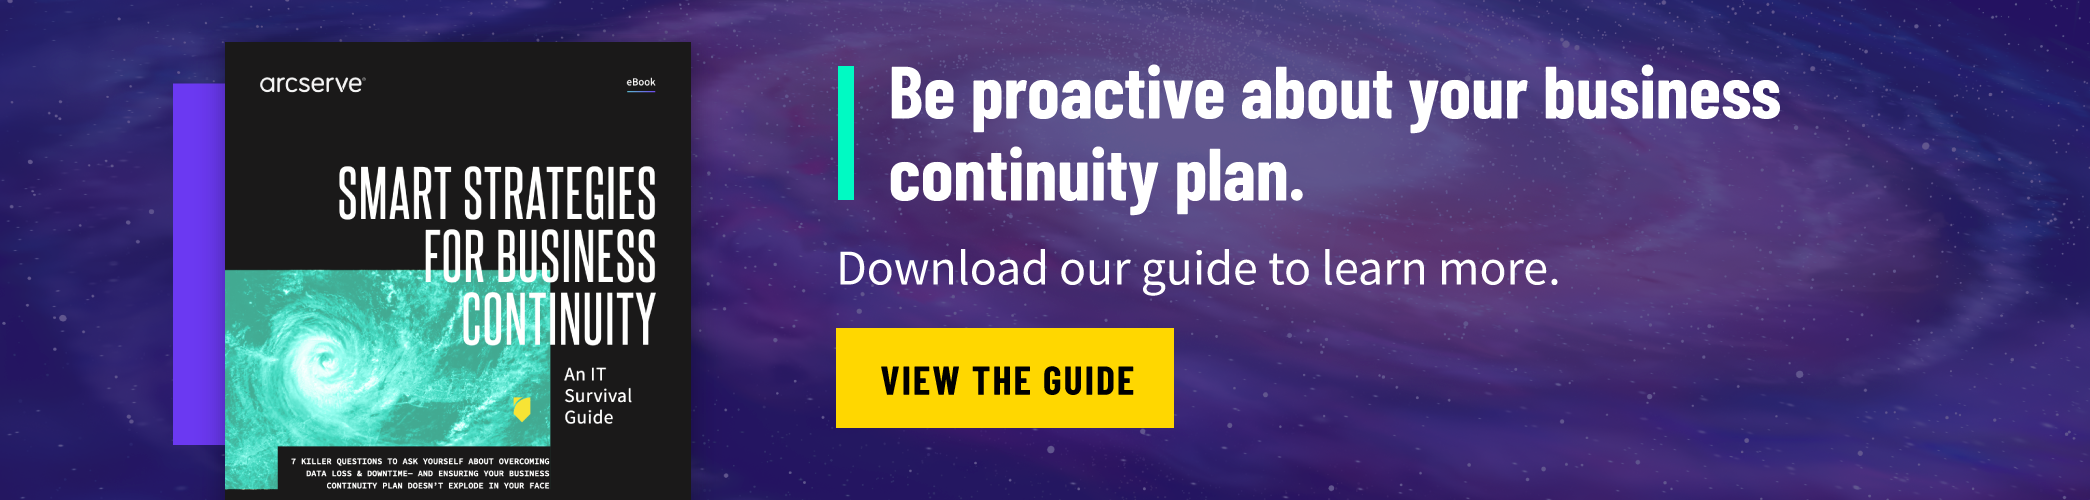 [Free eBook] Smart Strategies for Business Continuity: An IT Survival Guide. Download our free eBook to learn more >>